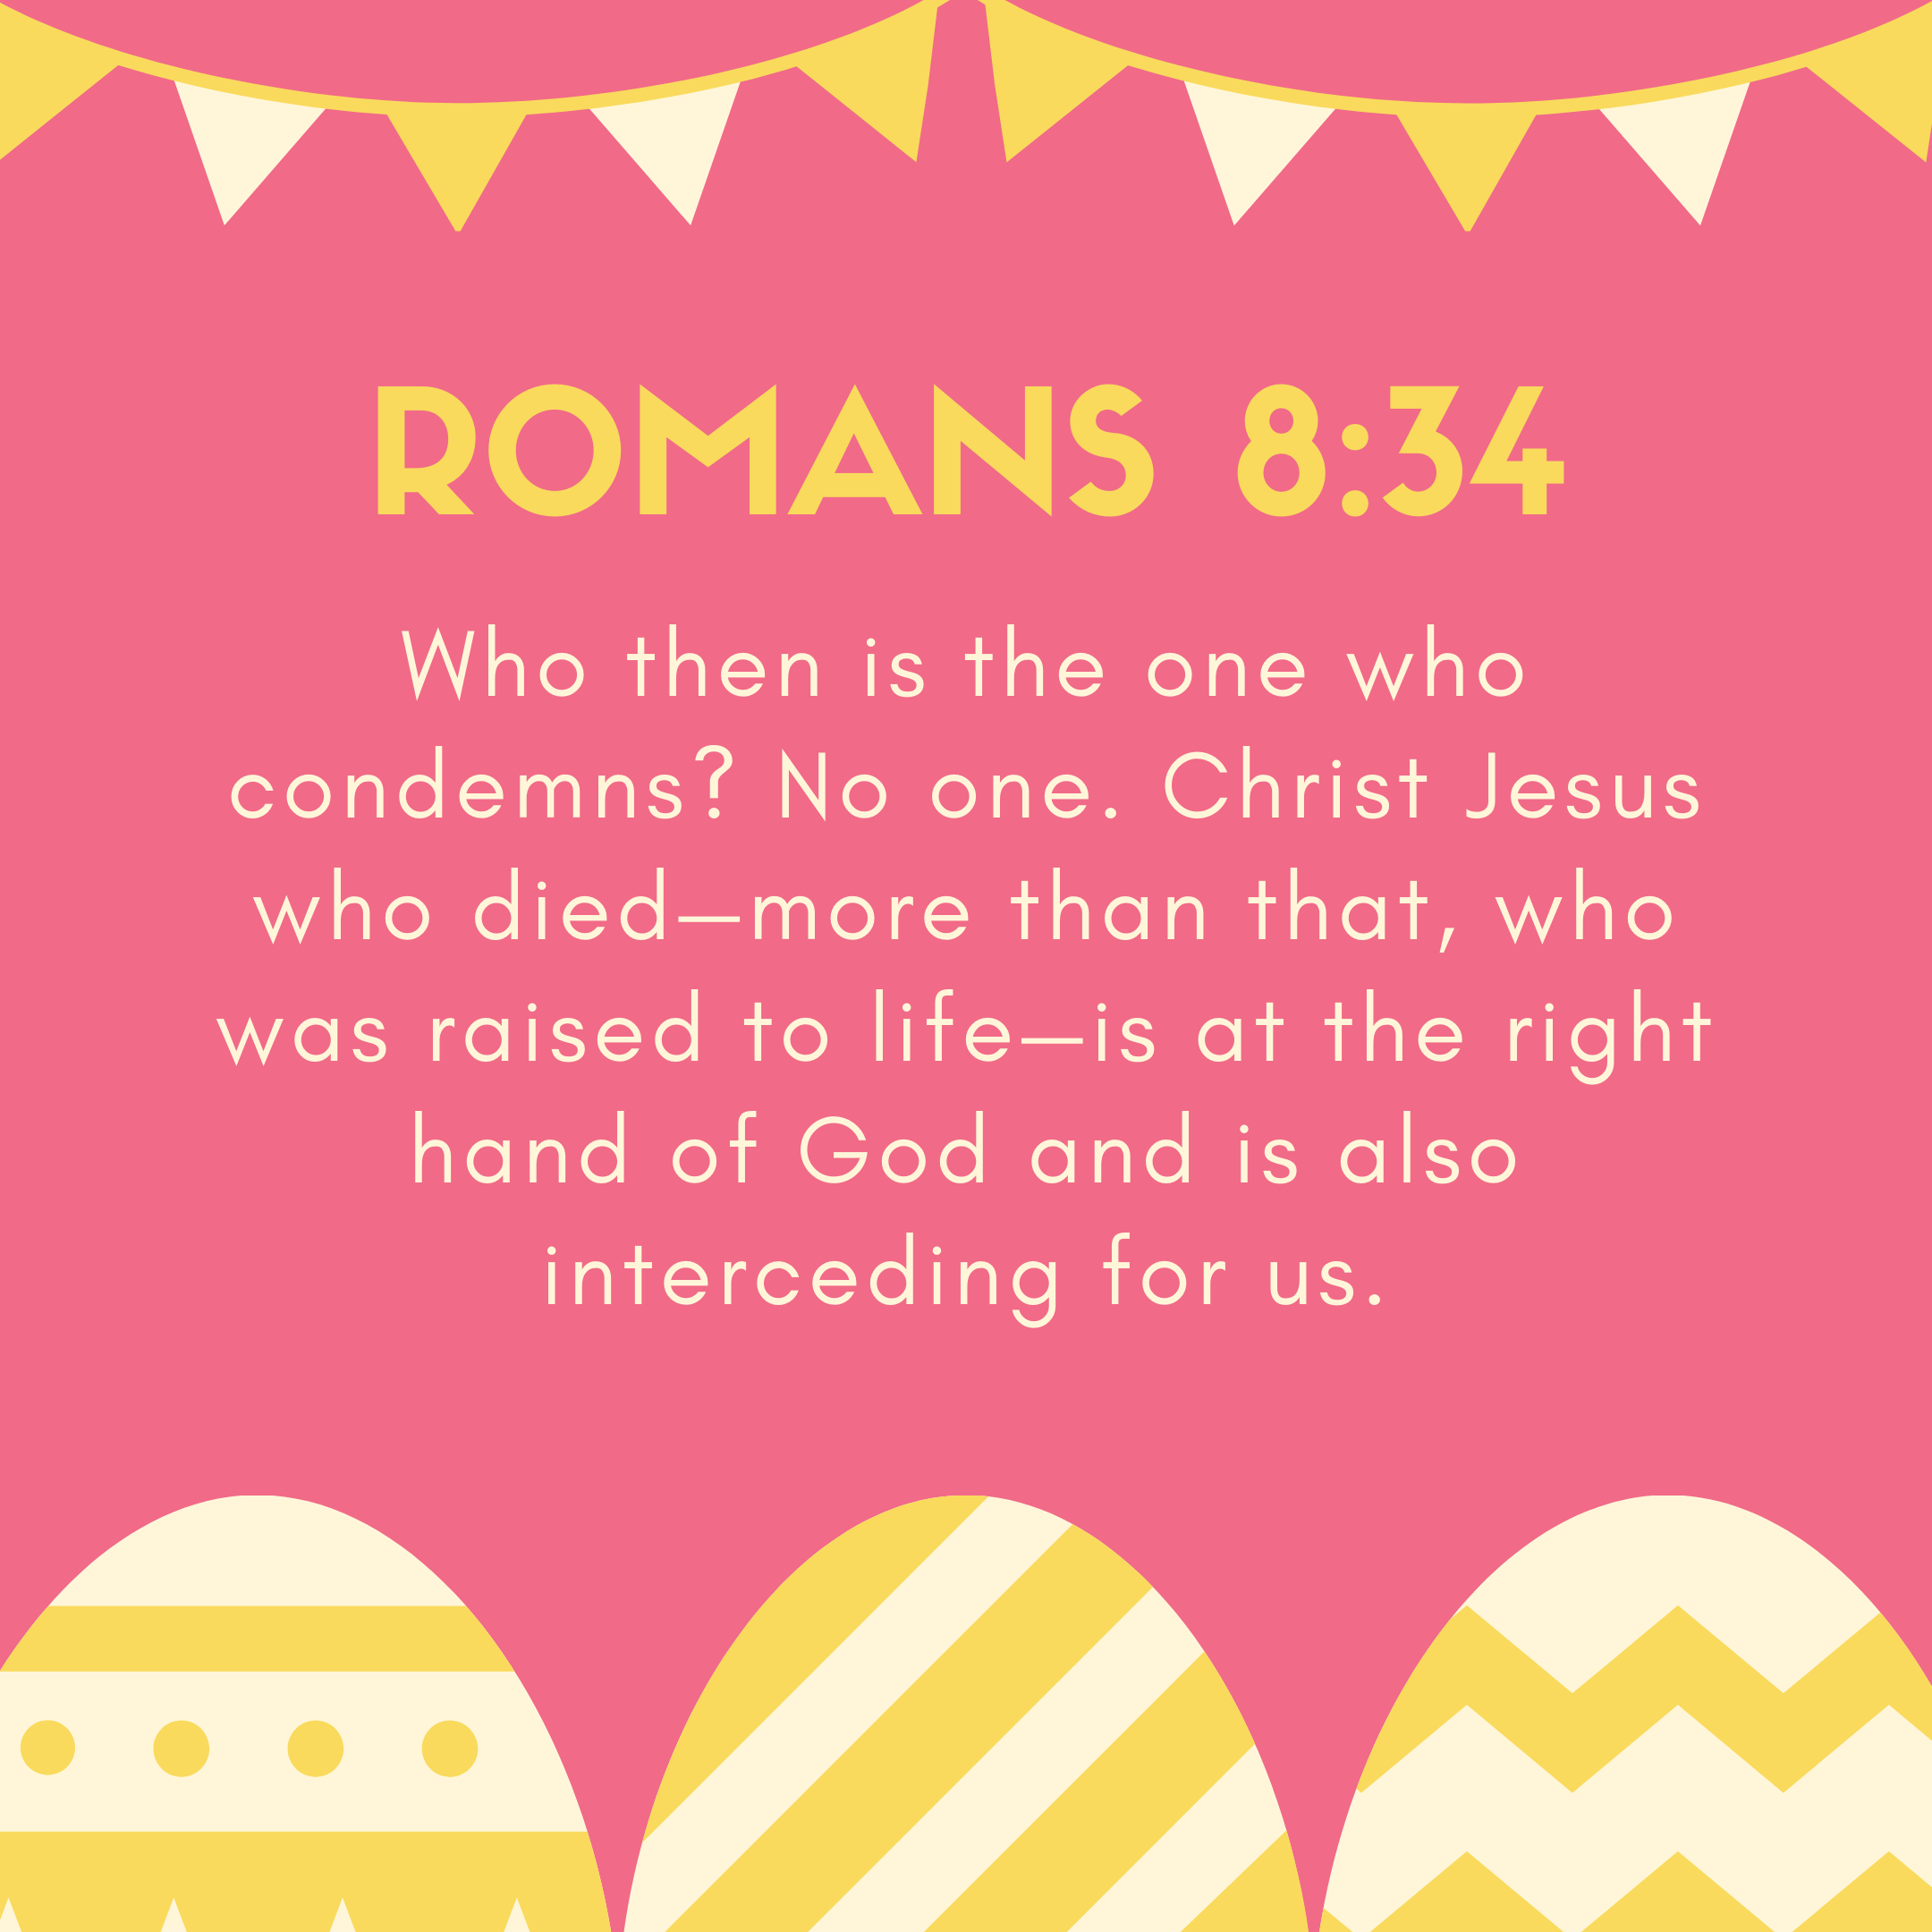 Romans 8:34 Who then is the one who condemns? No one. Christ Jesus who died—more than that, who was raised to life—is at the right hand of God and is also interceding for us.